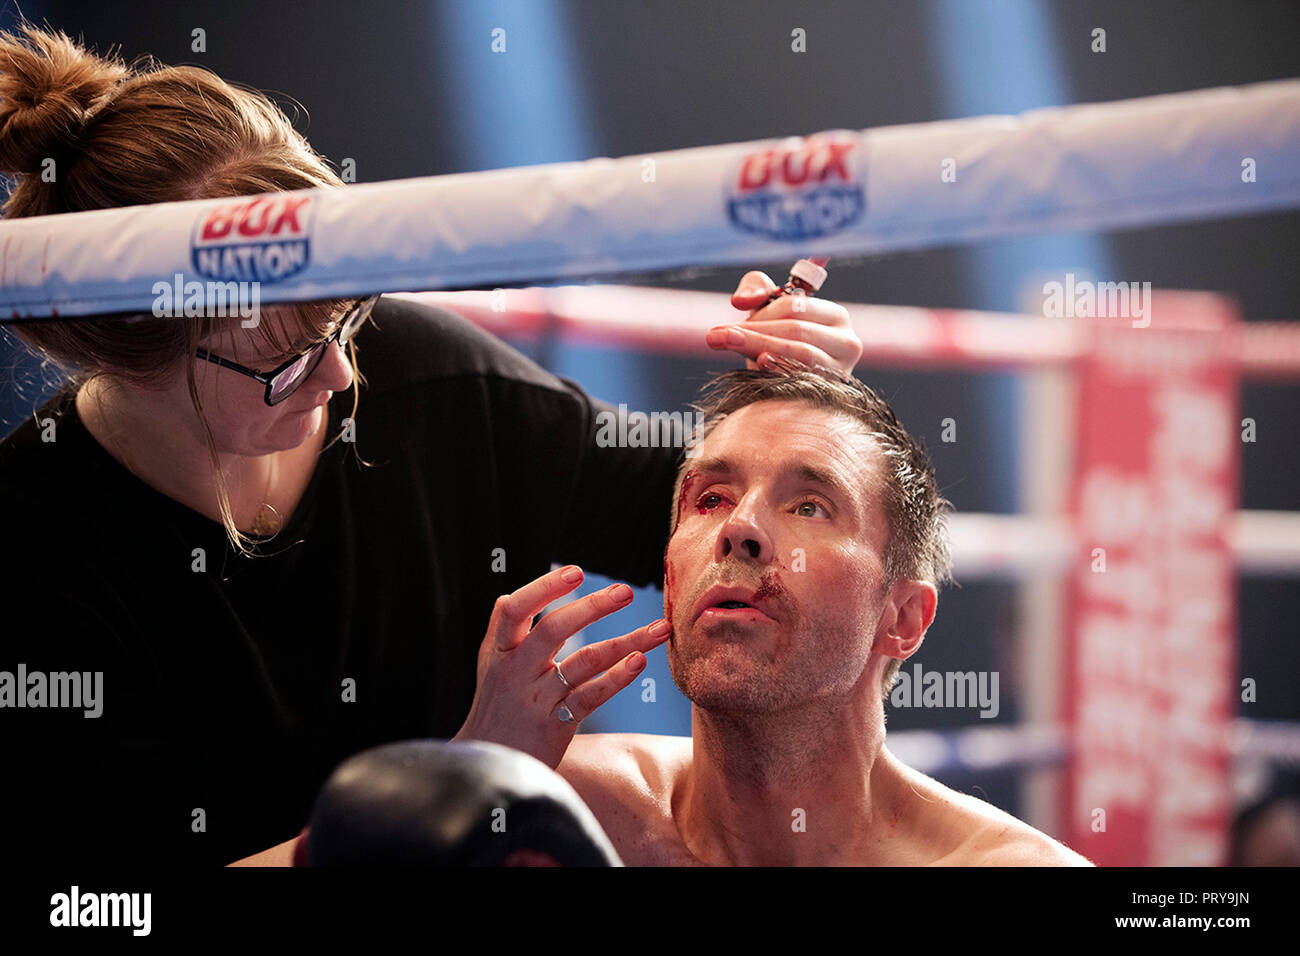 Prod DB ©Film4 - Inflammable Films / DR JOURNEYMAN de Paddy Considine 2017 GB Nadia Stacey (maquilleuse) Paddy Considine sur le tournage maquilleuse; - Stock Image